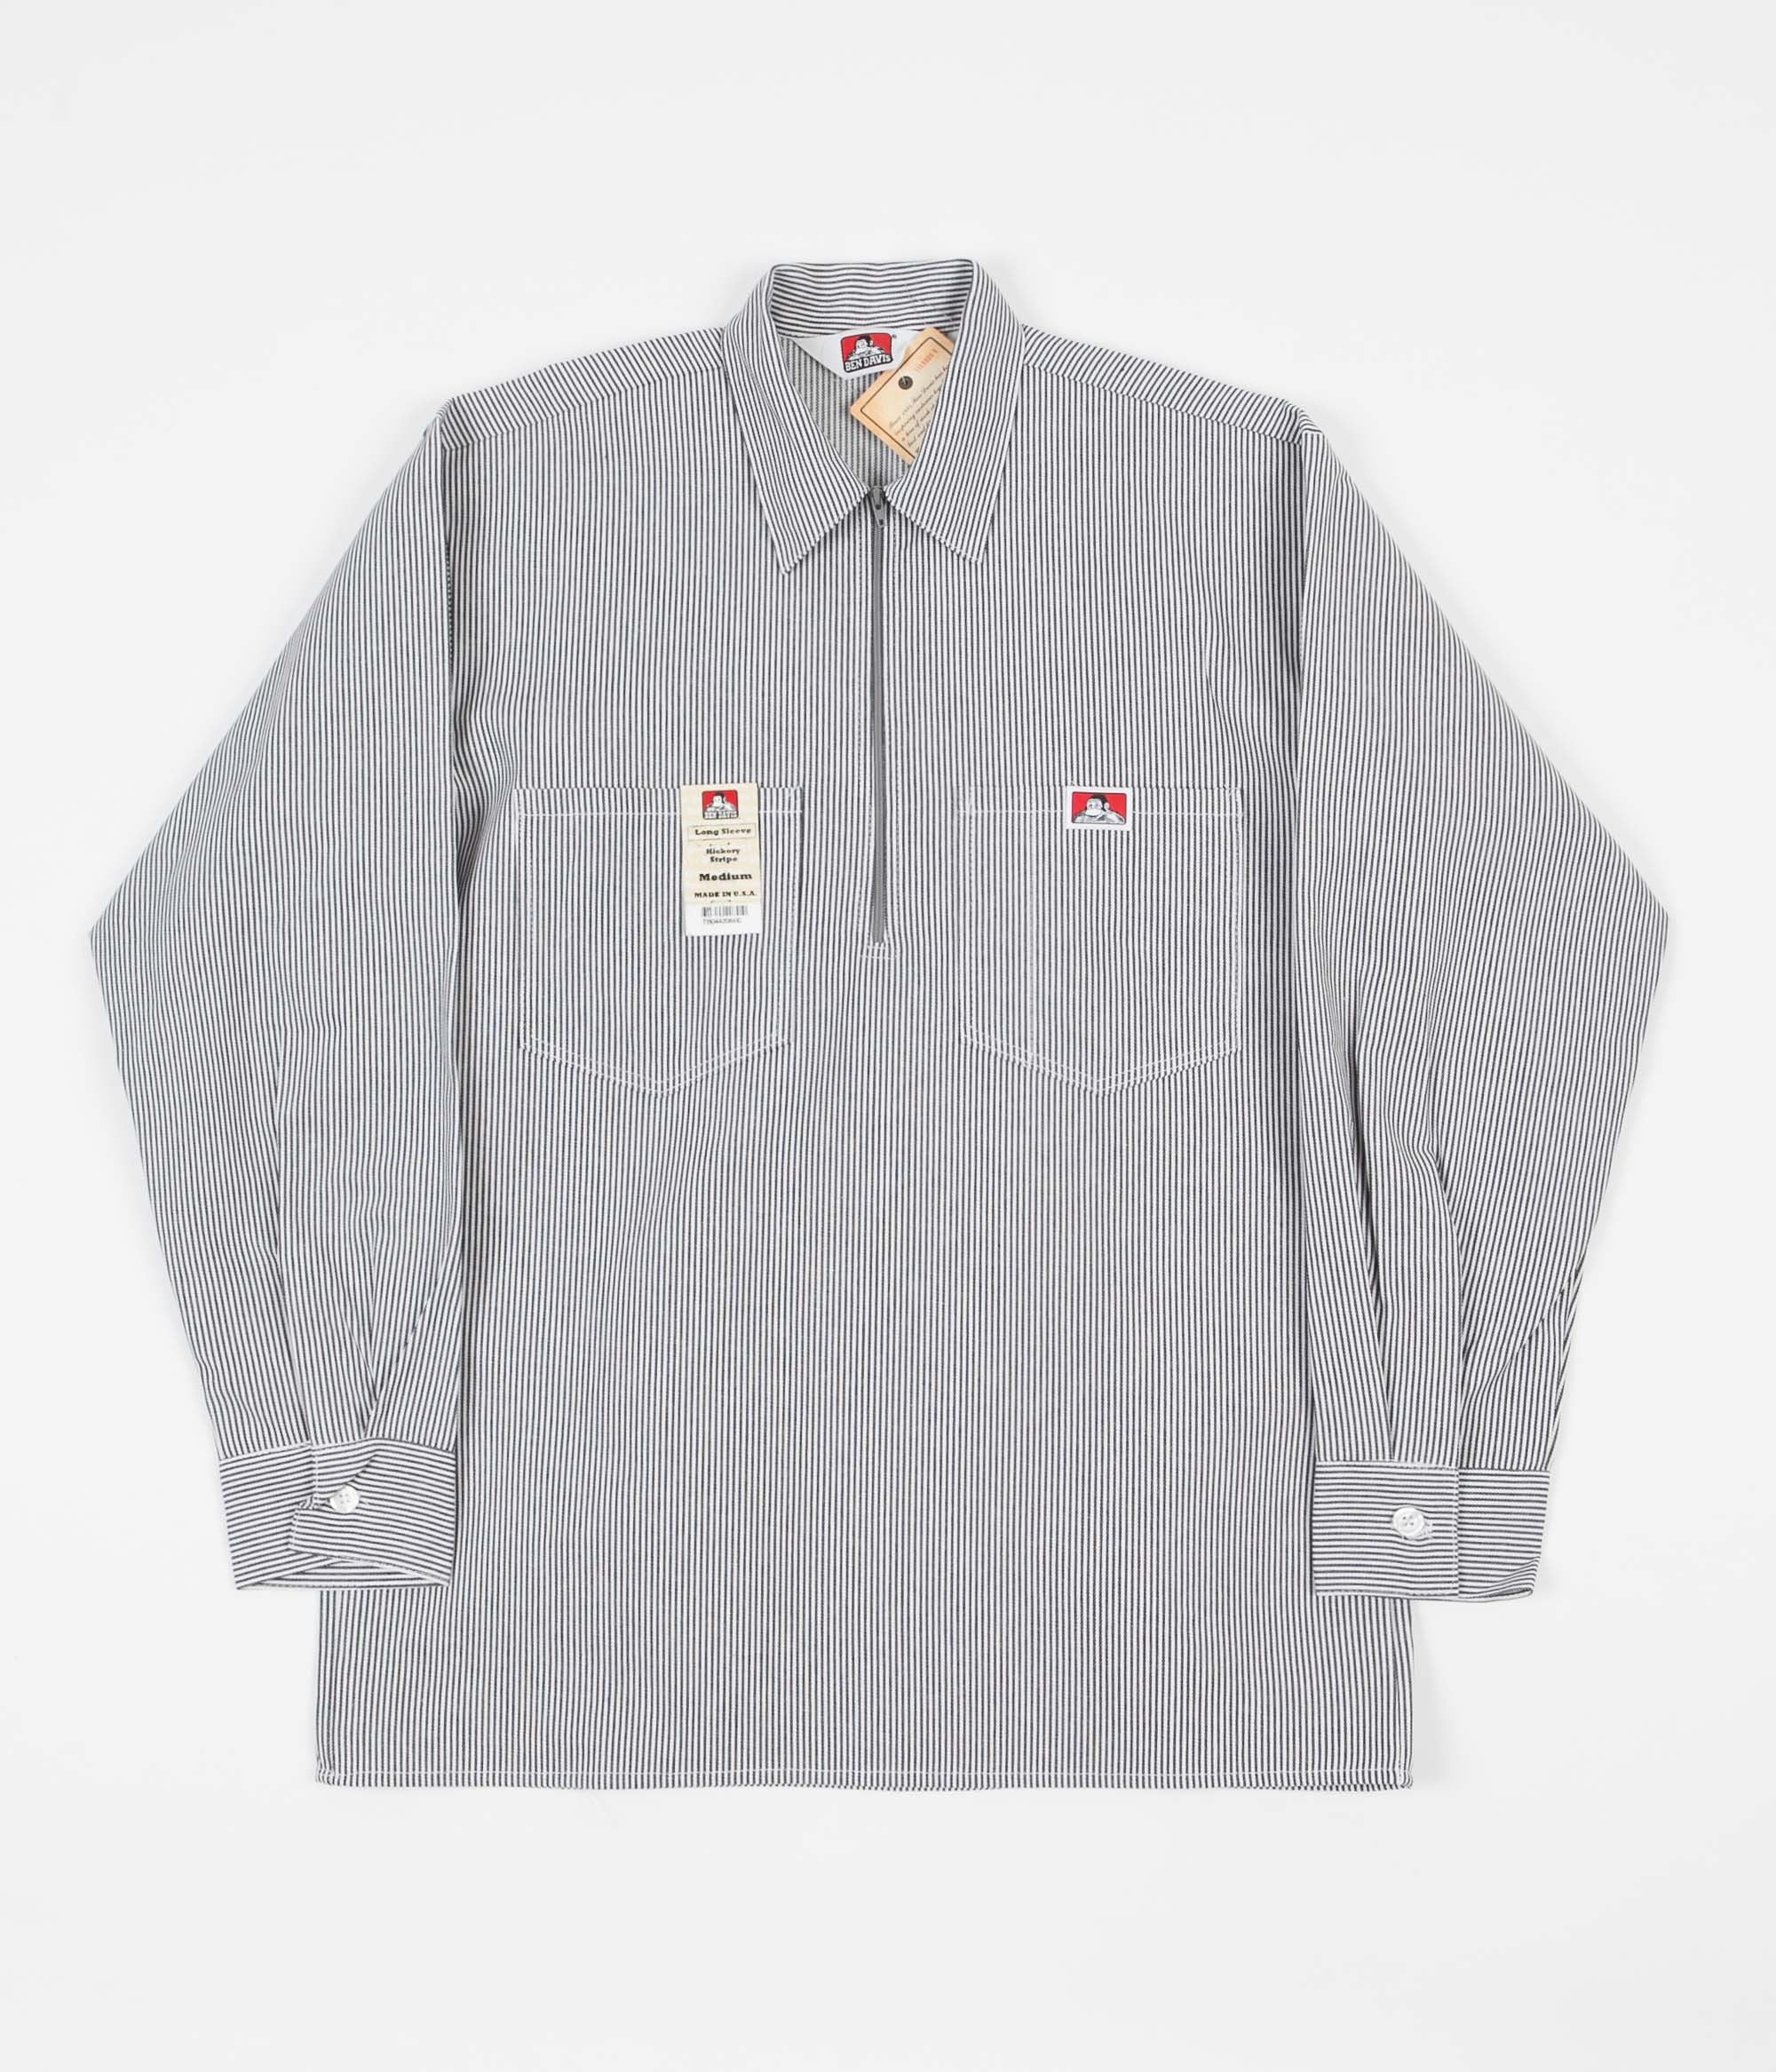 Ben Davis 1/2 Zip Long Sleeve Shirt - Hickory Stripe